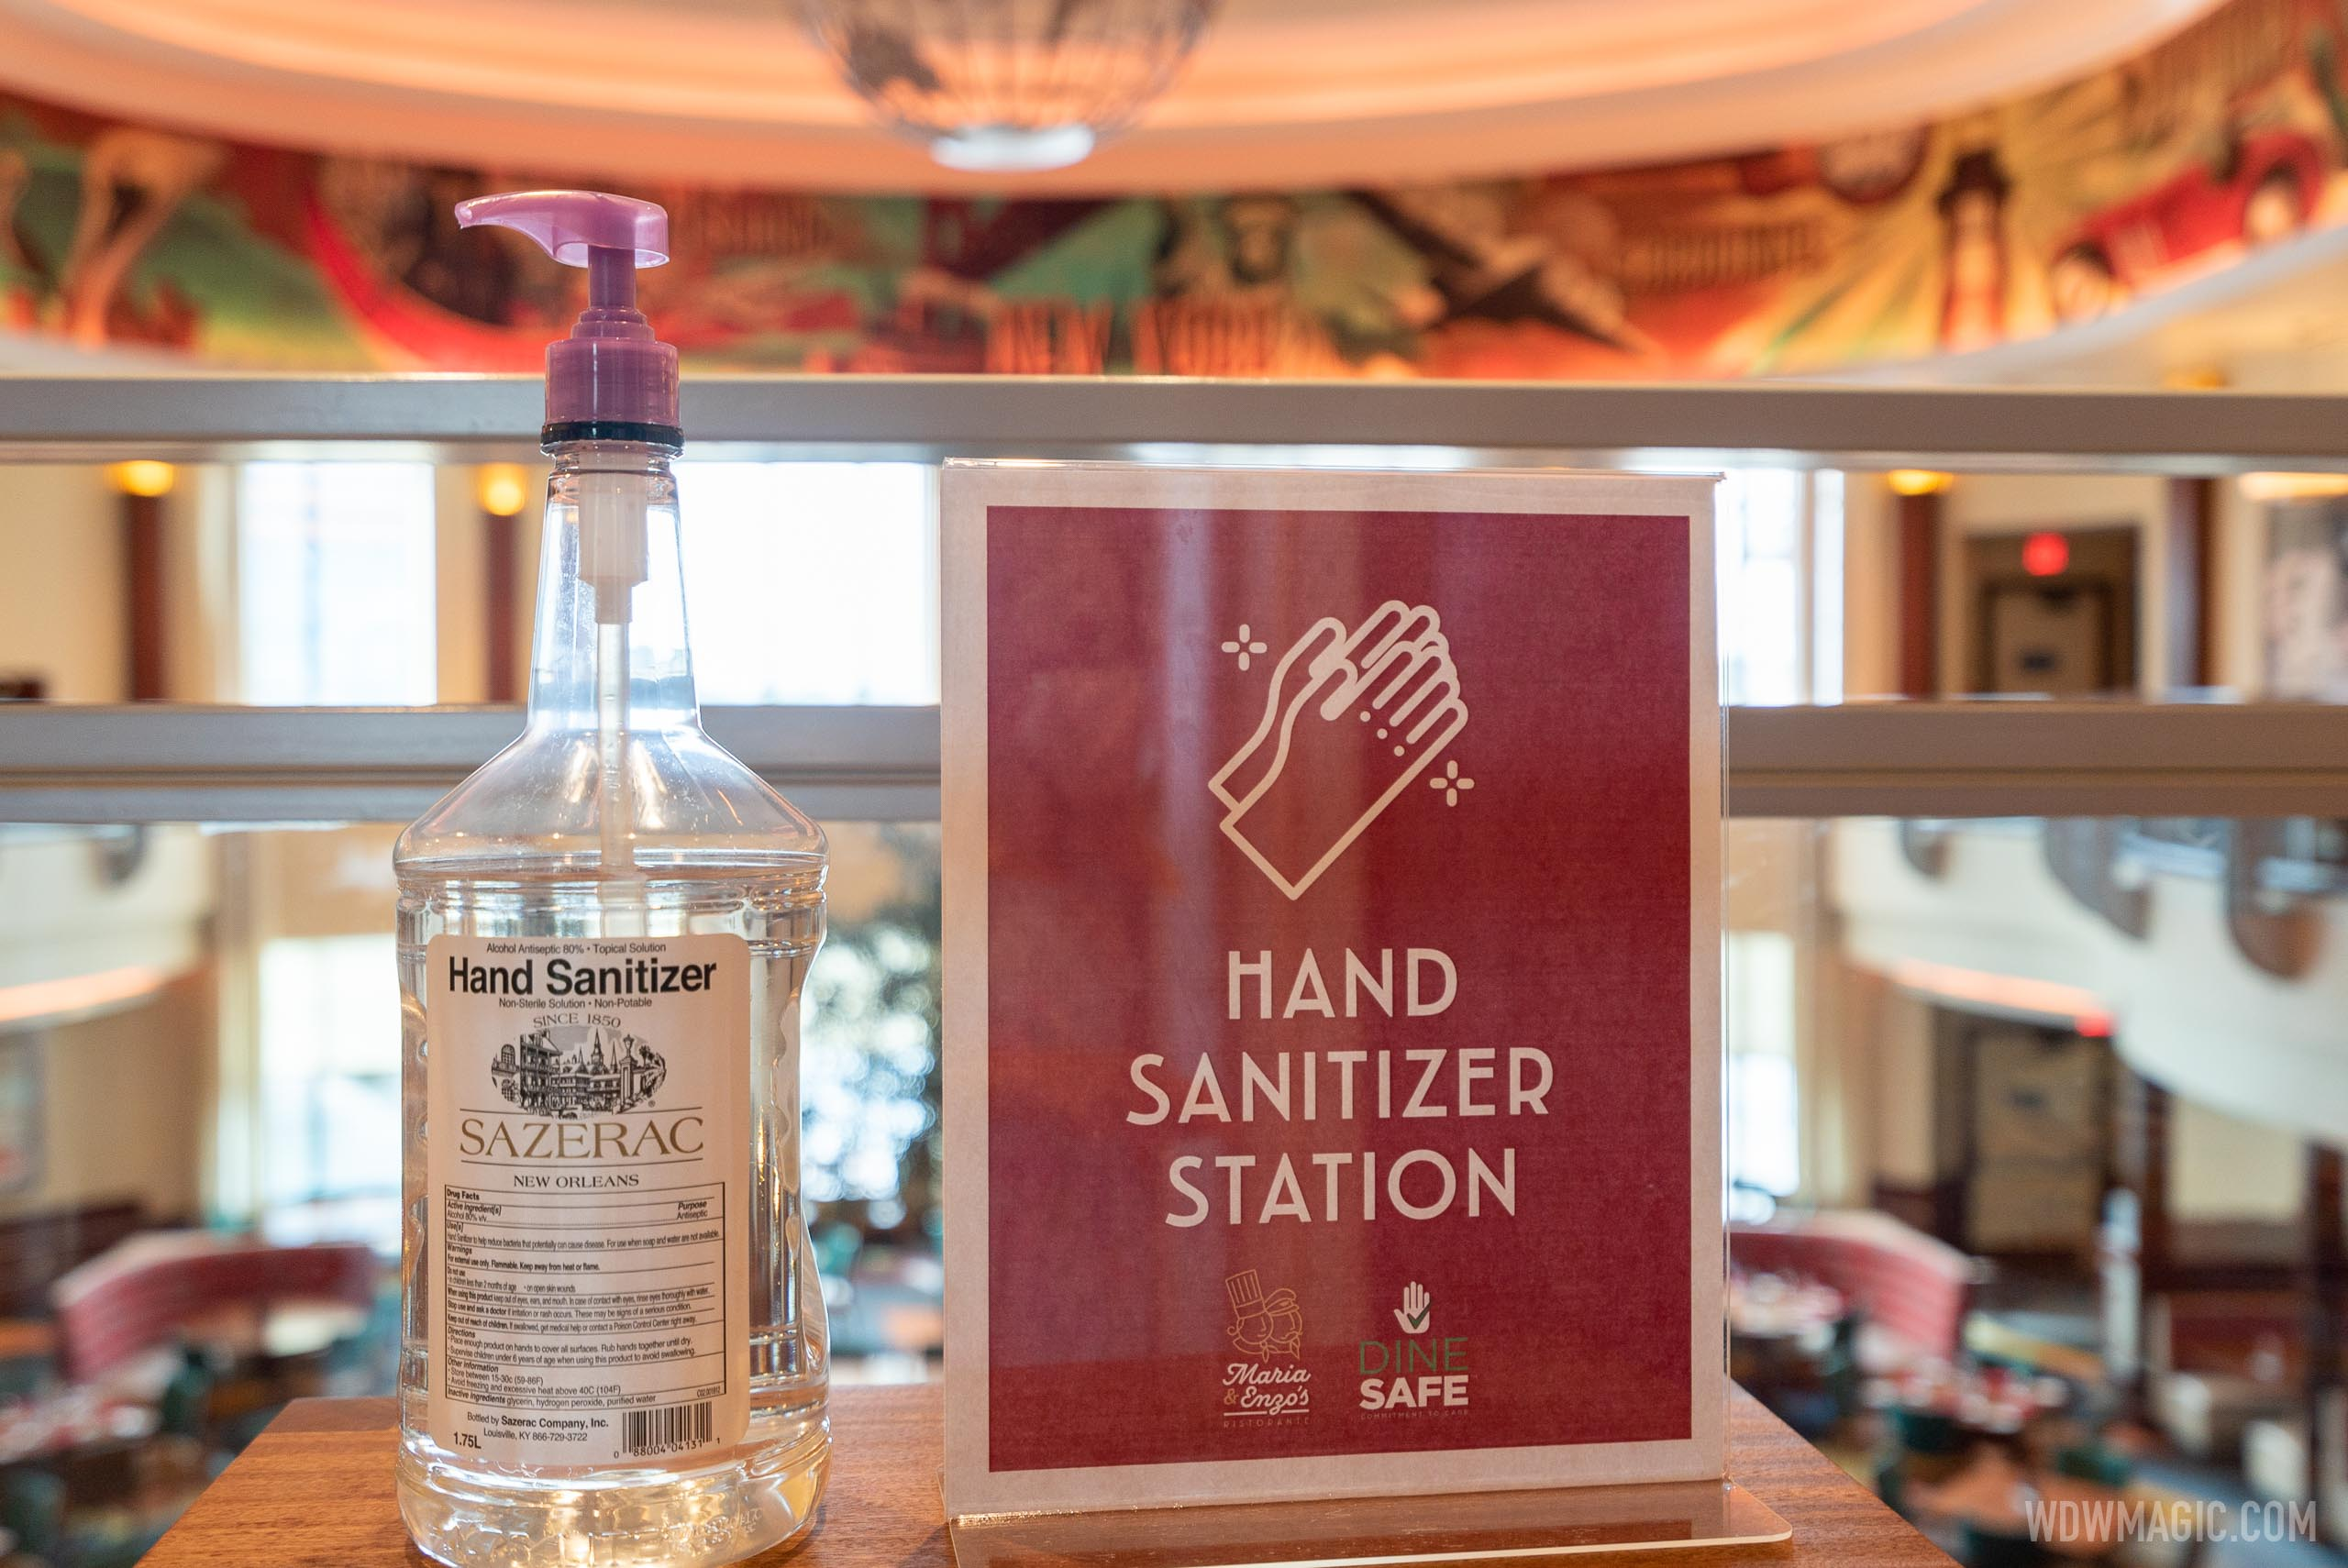 Hand sanitizer station at Maria and Enzo's